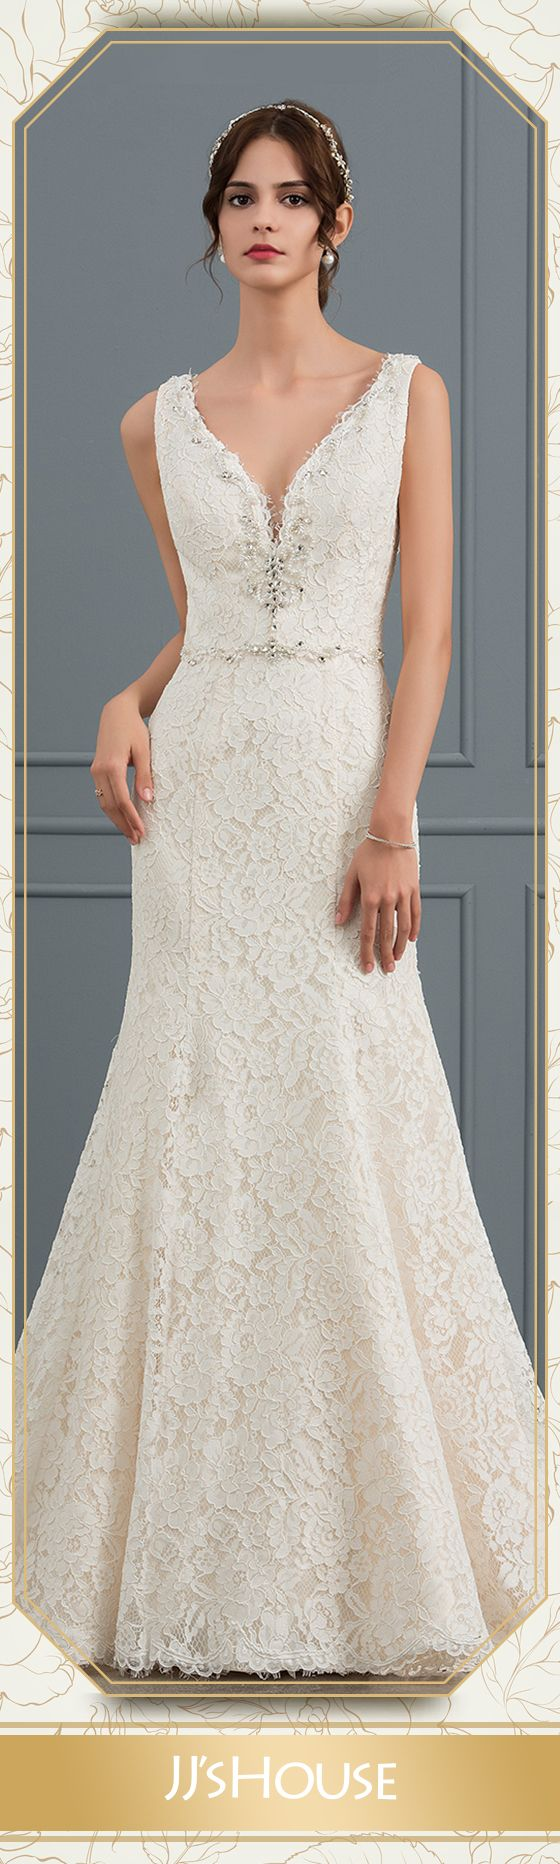 Trumpetmermaid vneck cathedral train lace wedding dress with